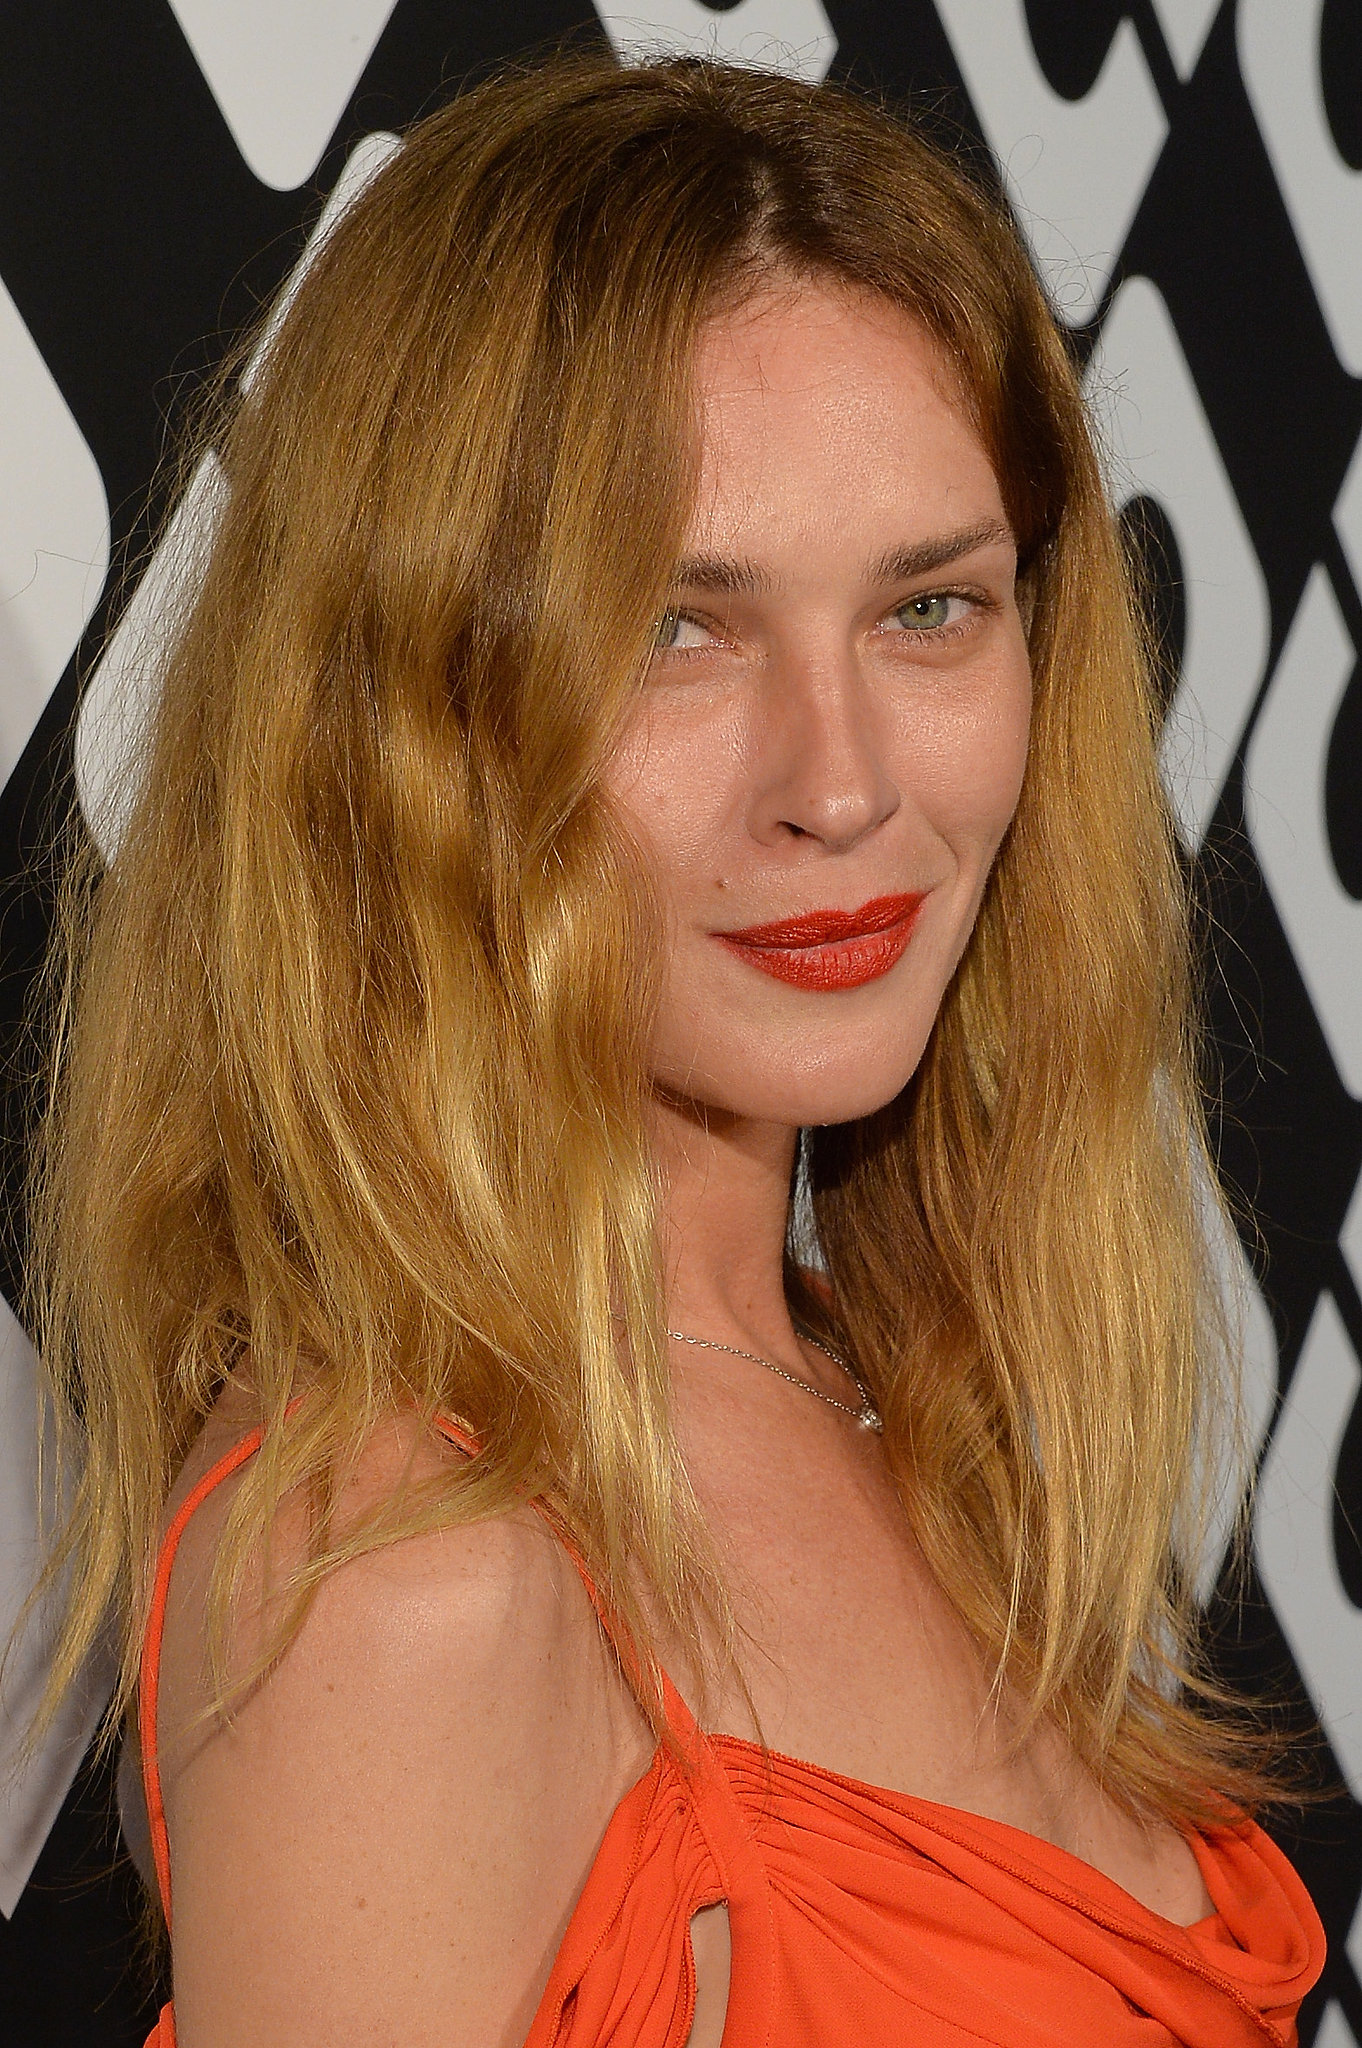 With her red lipstick and her messy yet chic bed head, Erin Wasson simply oozed rocker-girl beauty.